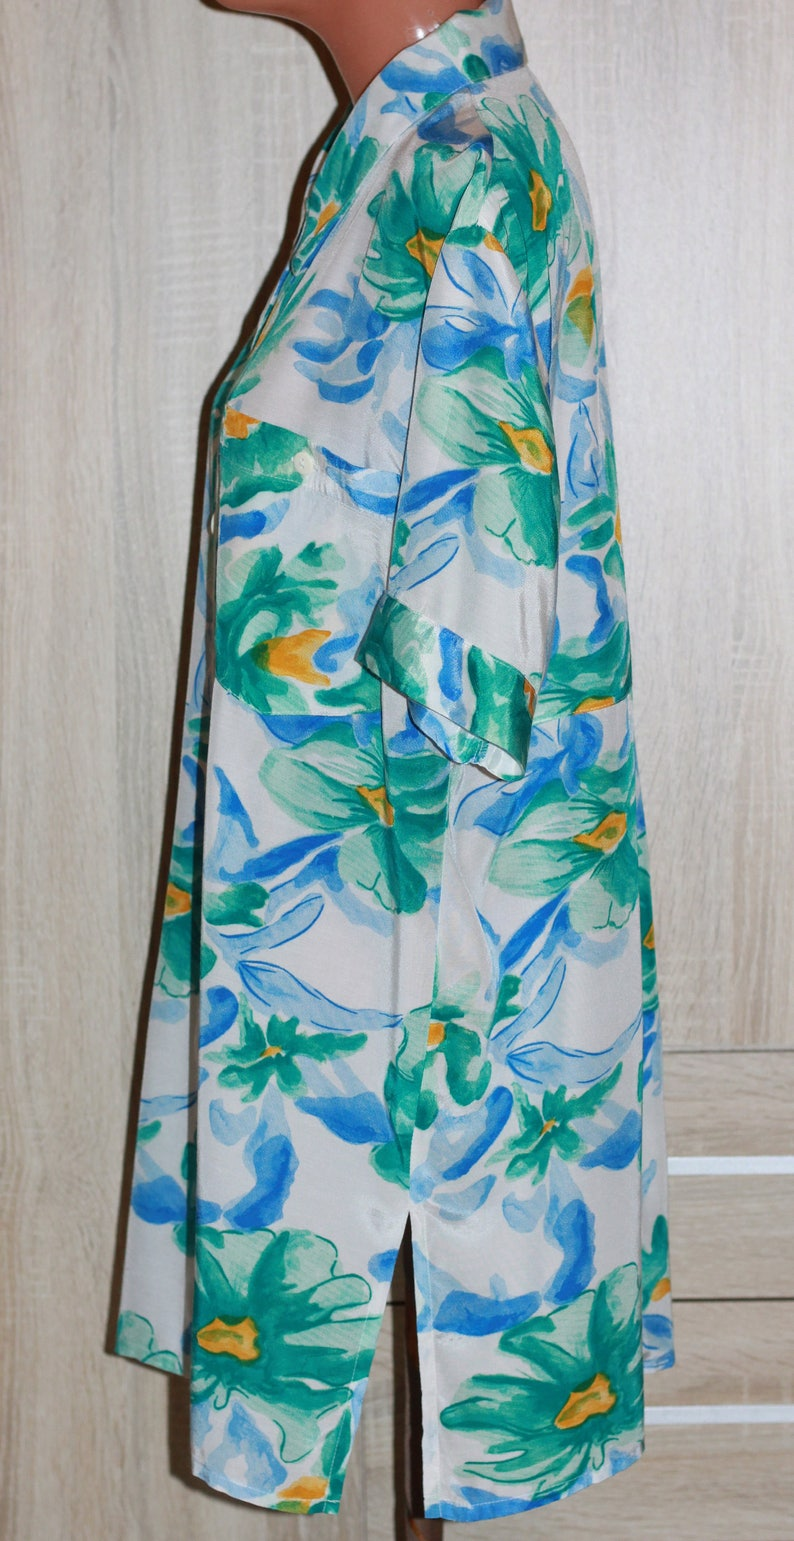 Oversized Blouse Short Sleeves,White Blue Green color Size M Vintage style Tunic